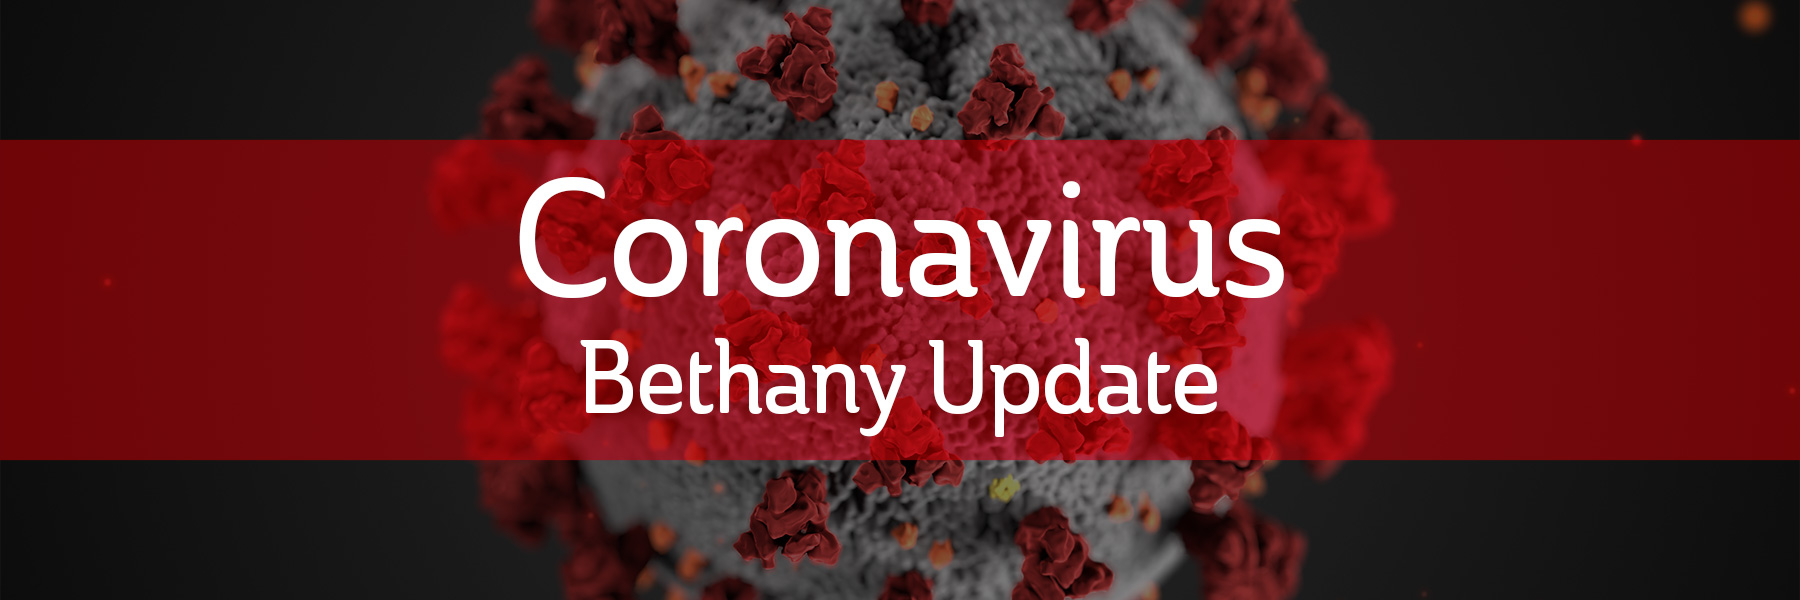 Coronovirus Bethany Update text over graphic image